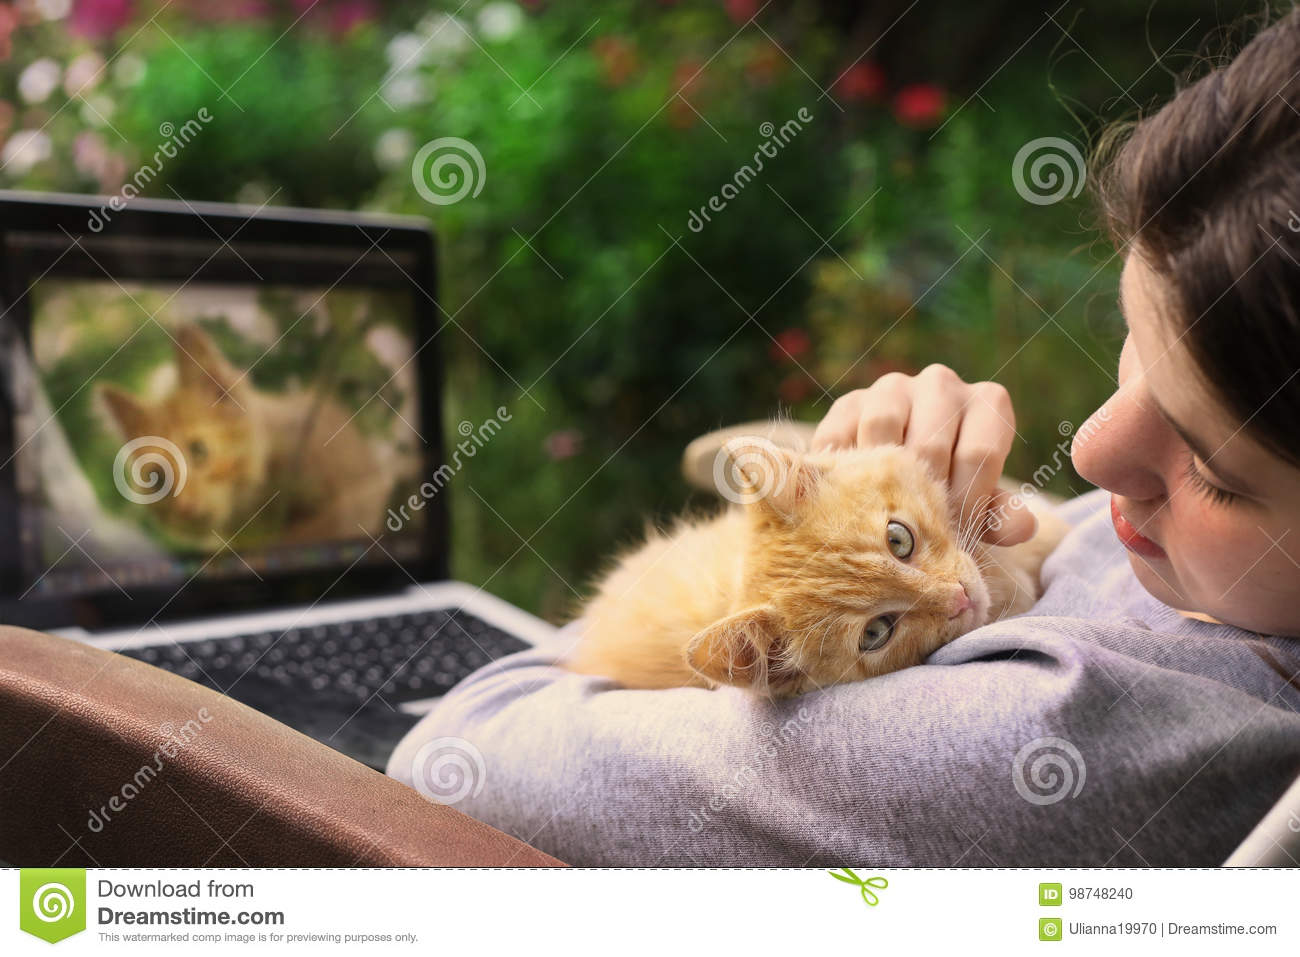 Teenager girl working on retouch photo on laptop with red kitten